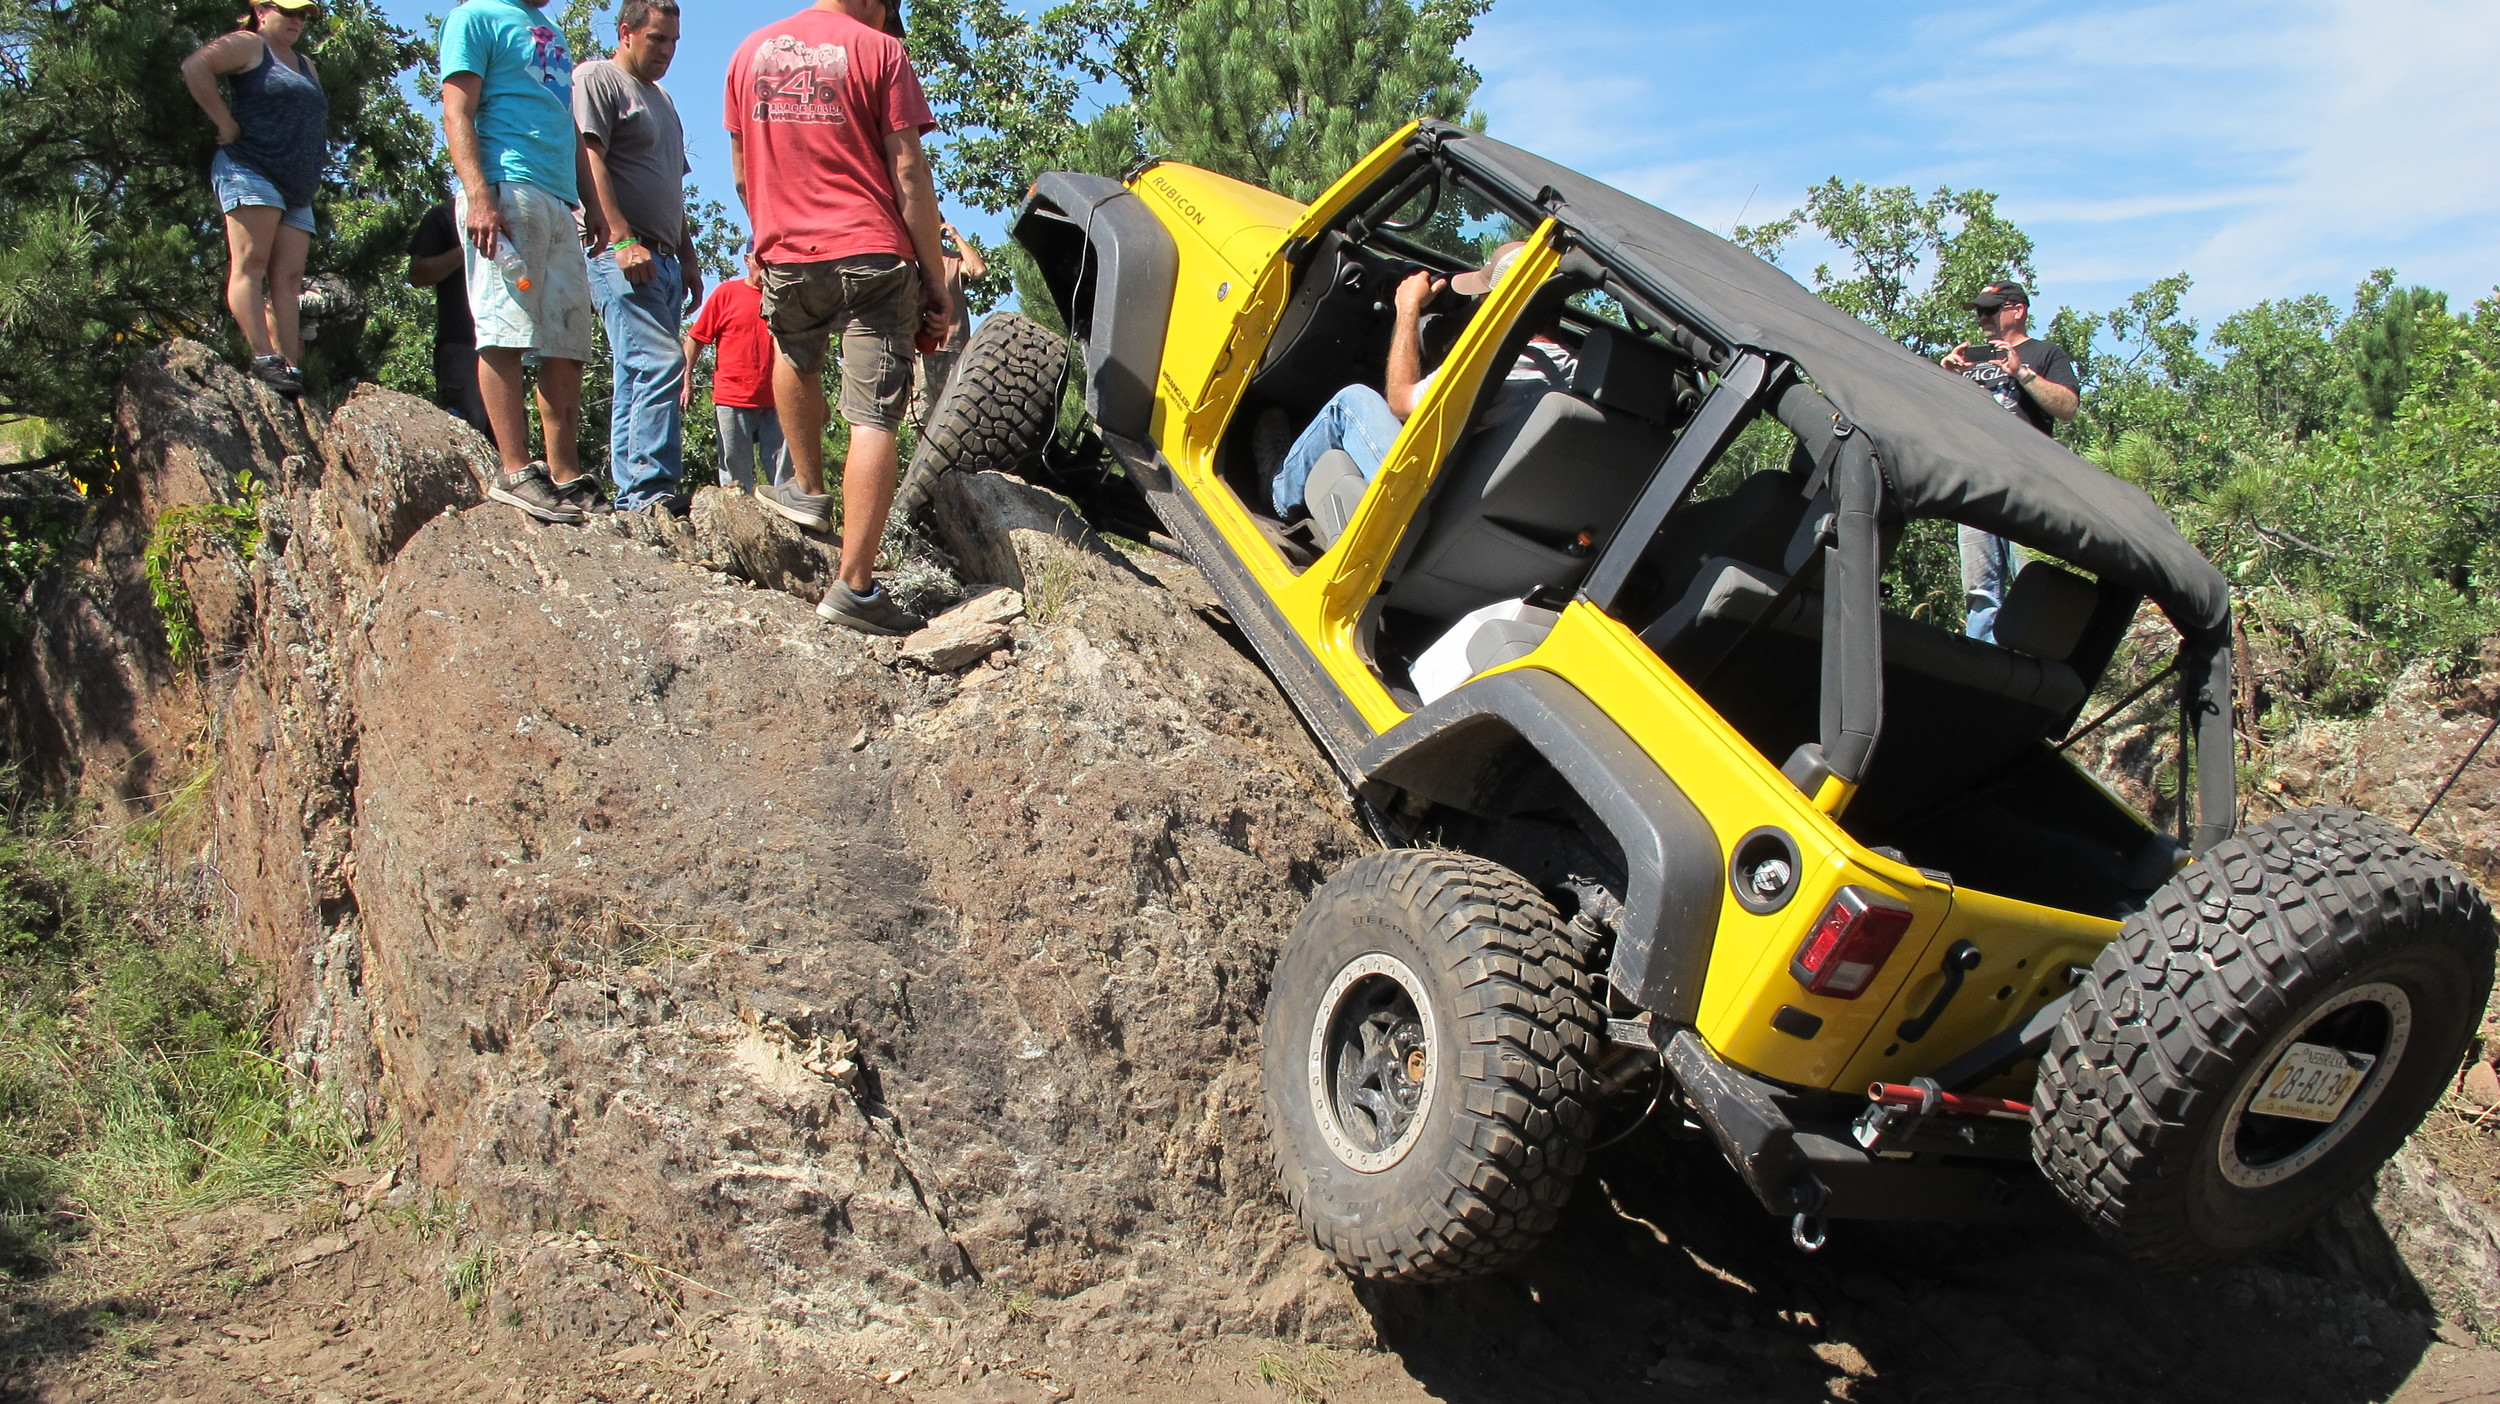 More than one spotter assisting on some of the more technical features on the trails.